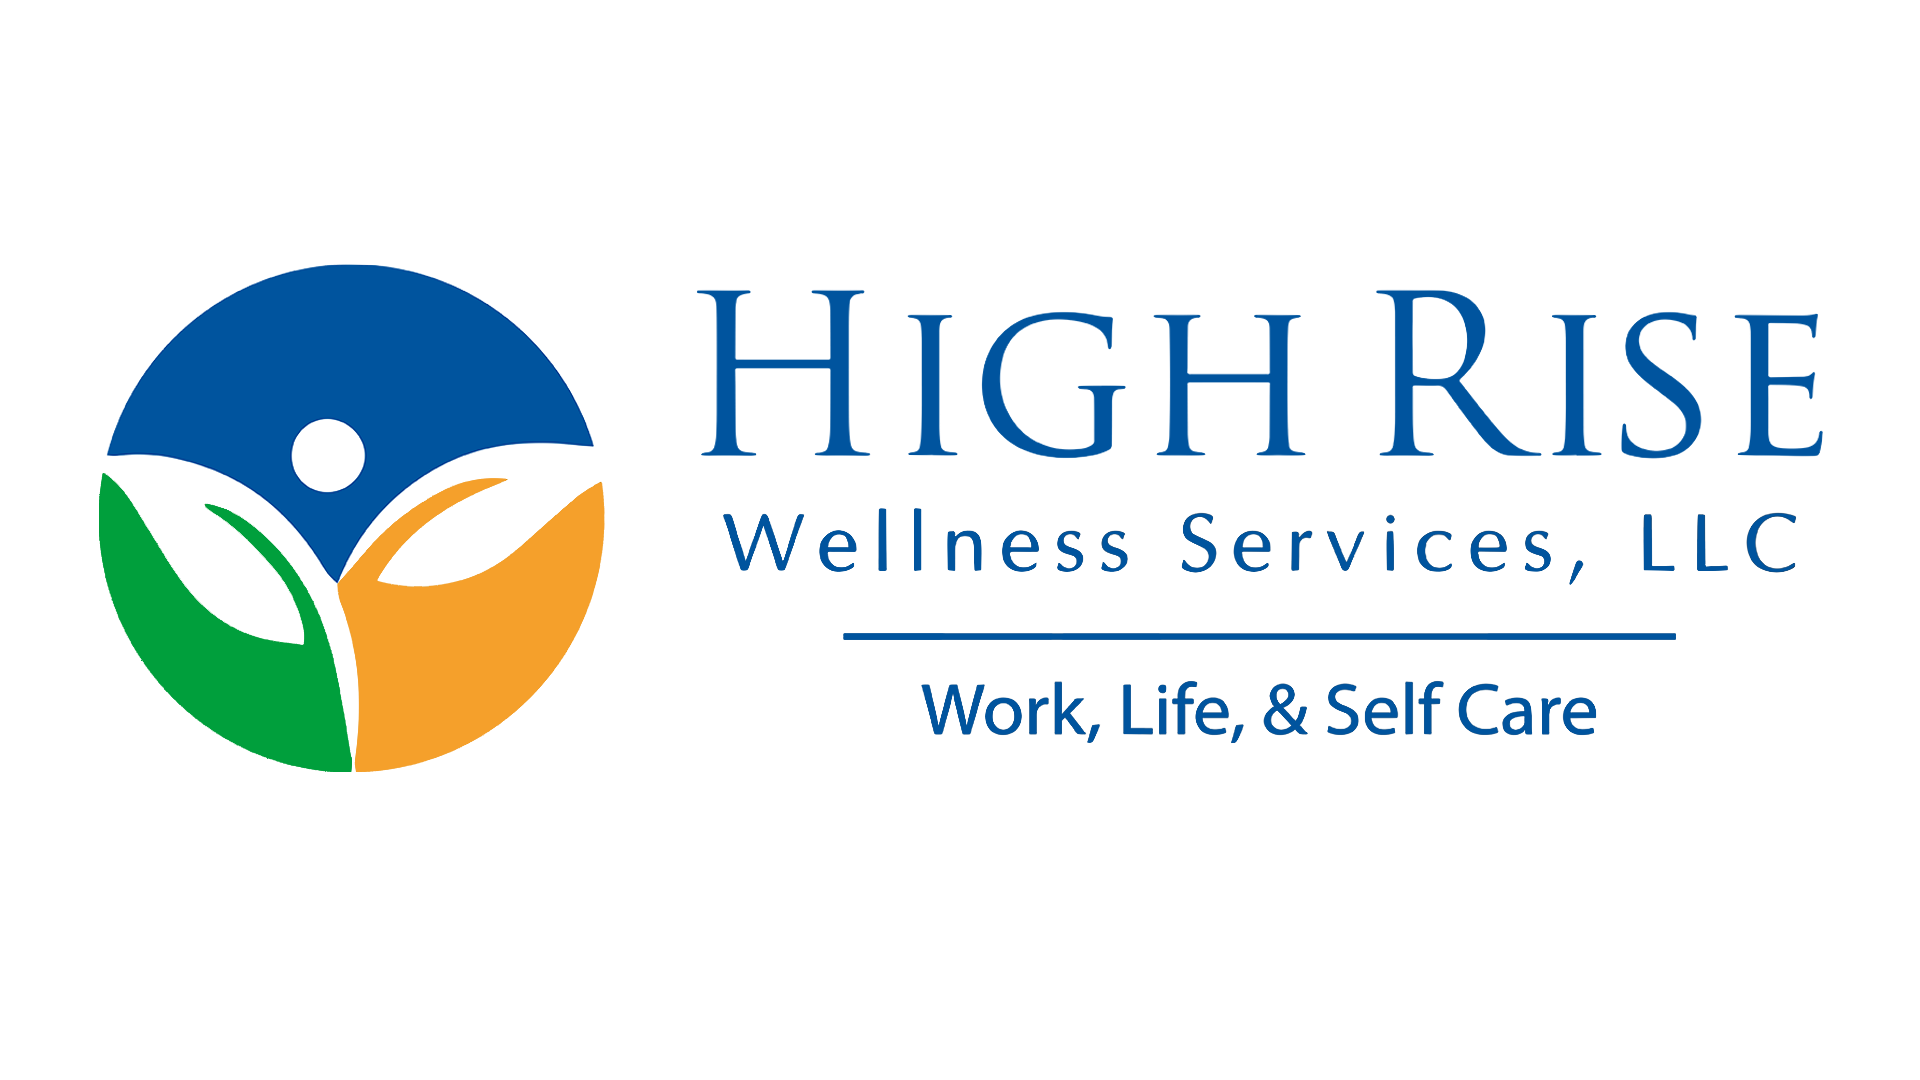 High Rise Wellness Services